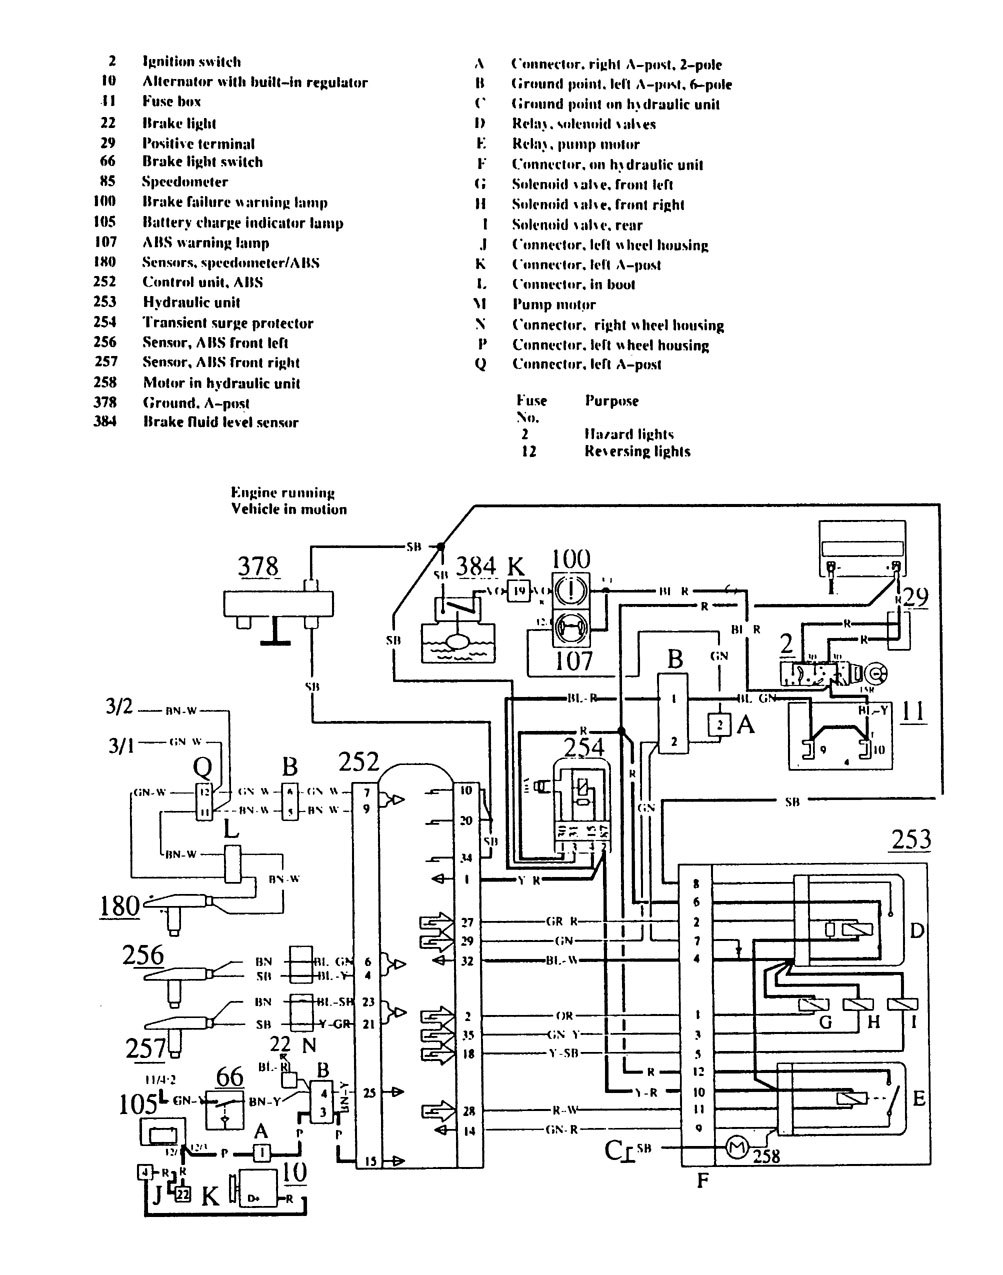 Volvo 740 Stereo Wiring Manual Guide Diagram Saab Sonett 91 Fuse Box Starter Odicis 1989 Radio